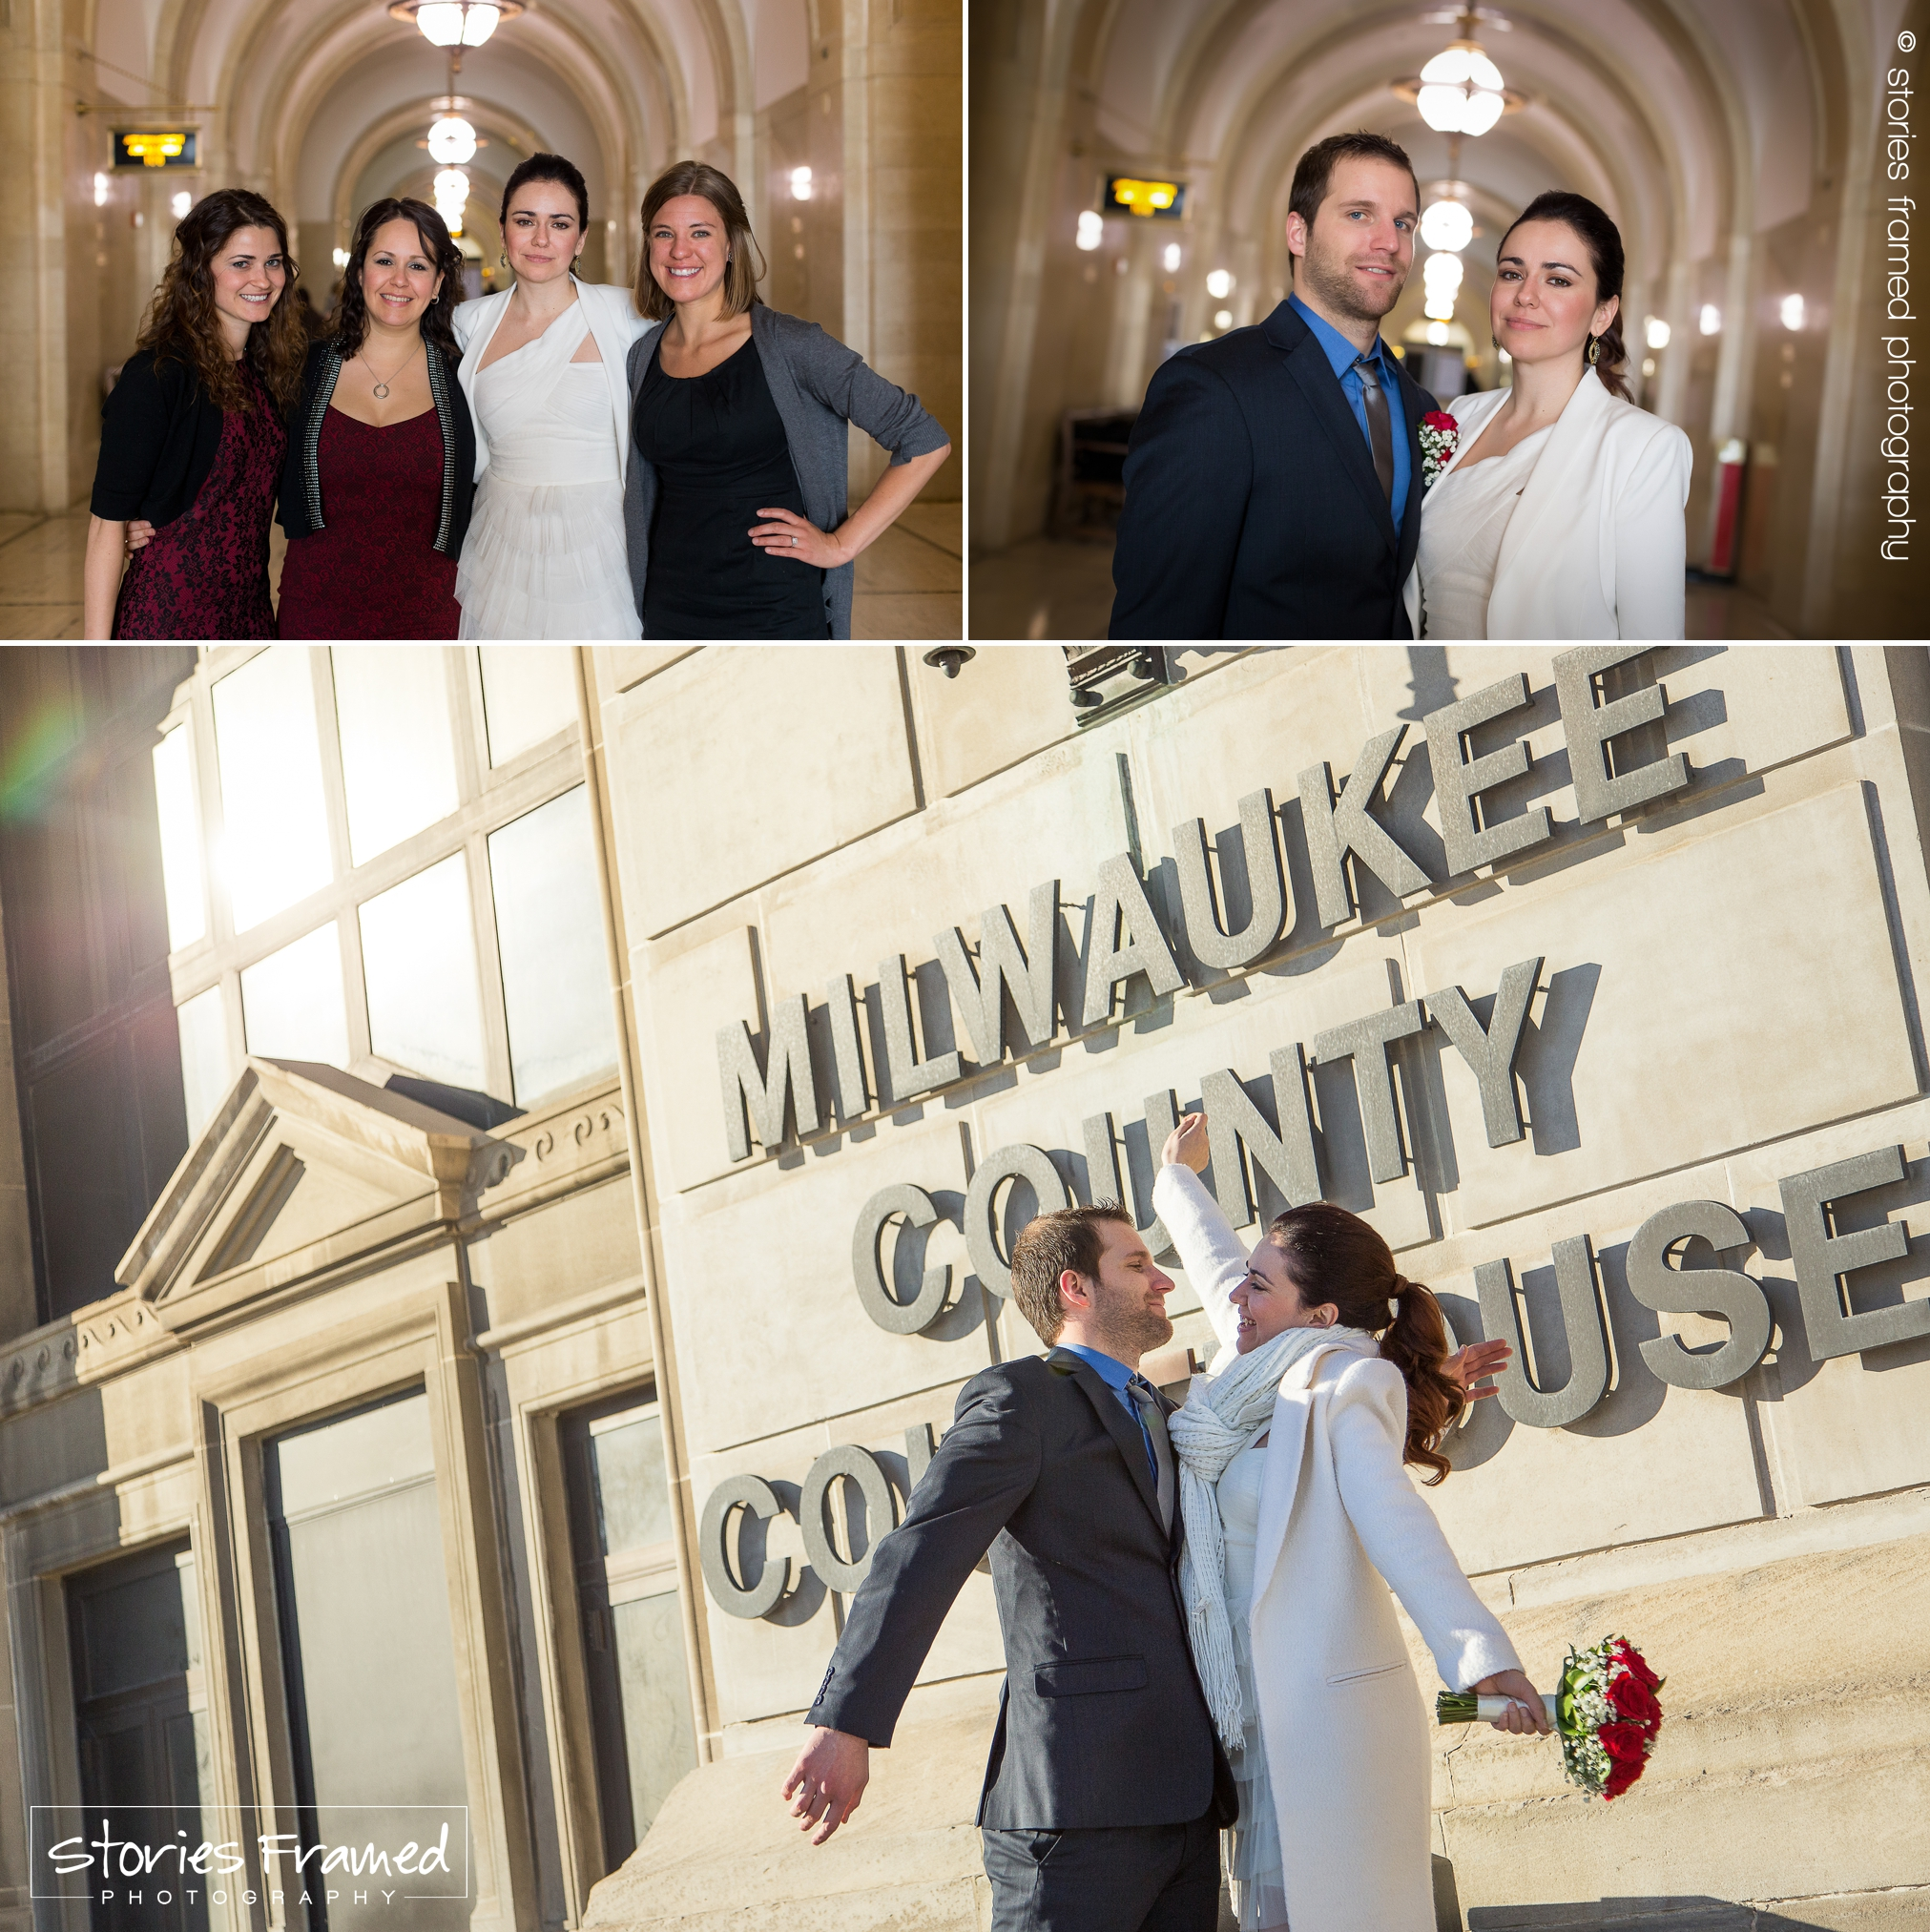 Friends, fiances and married in Milwaukee! Look at that joy! Felicidades!